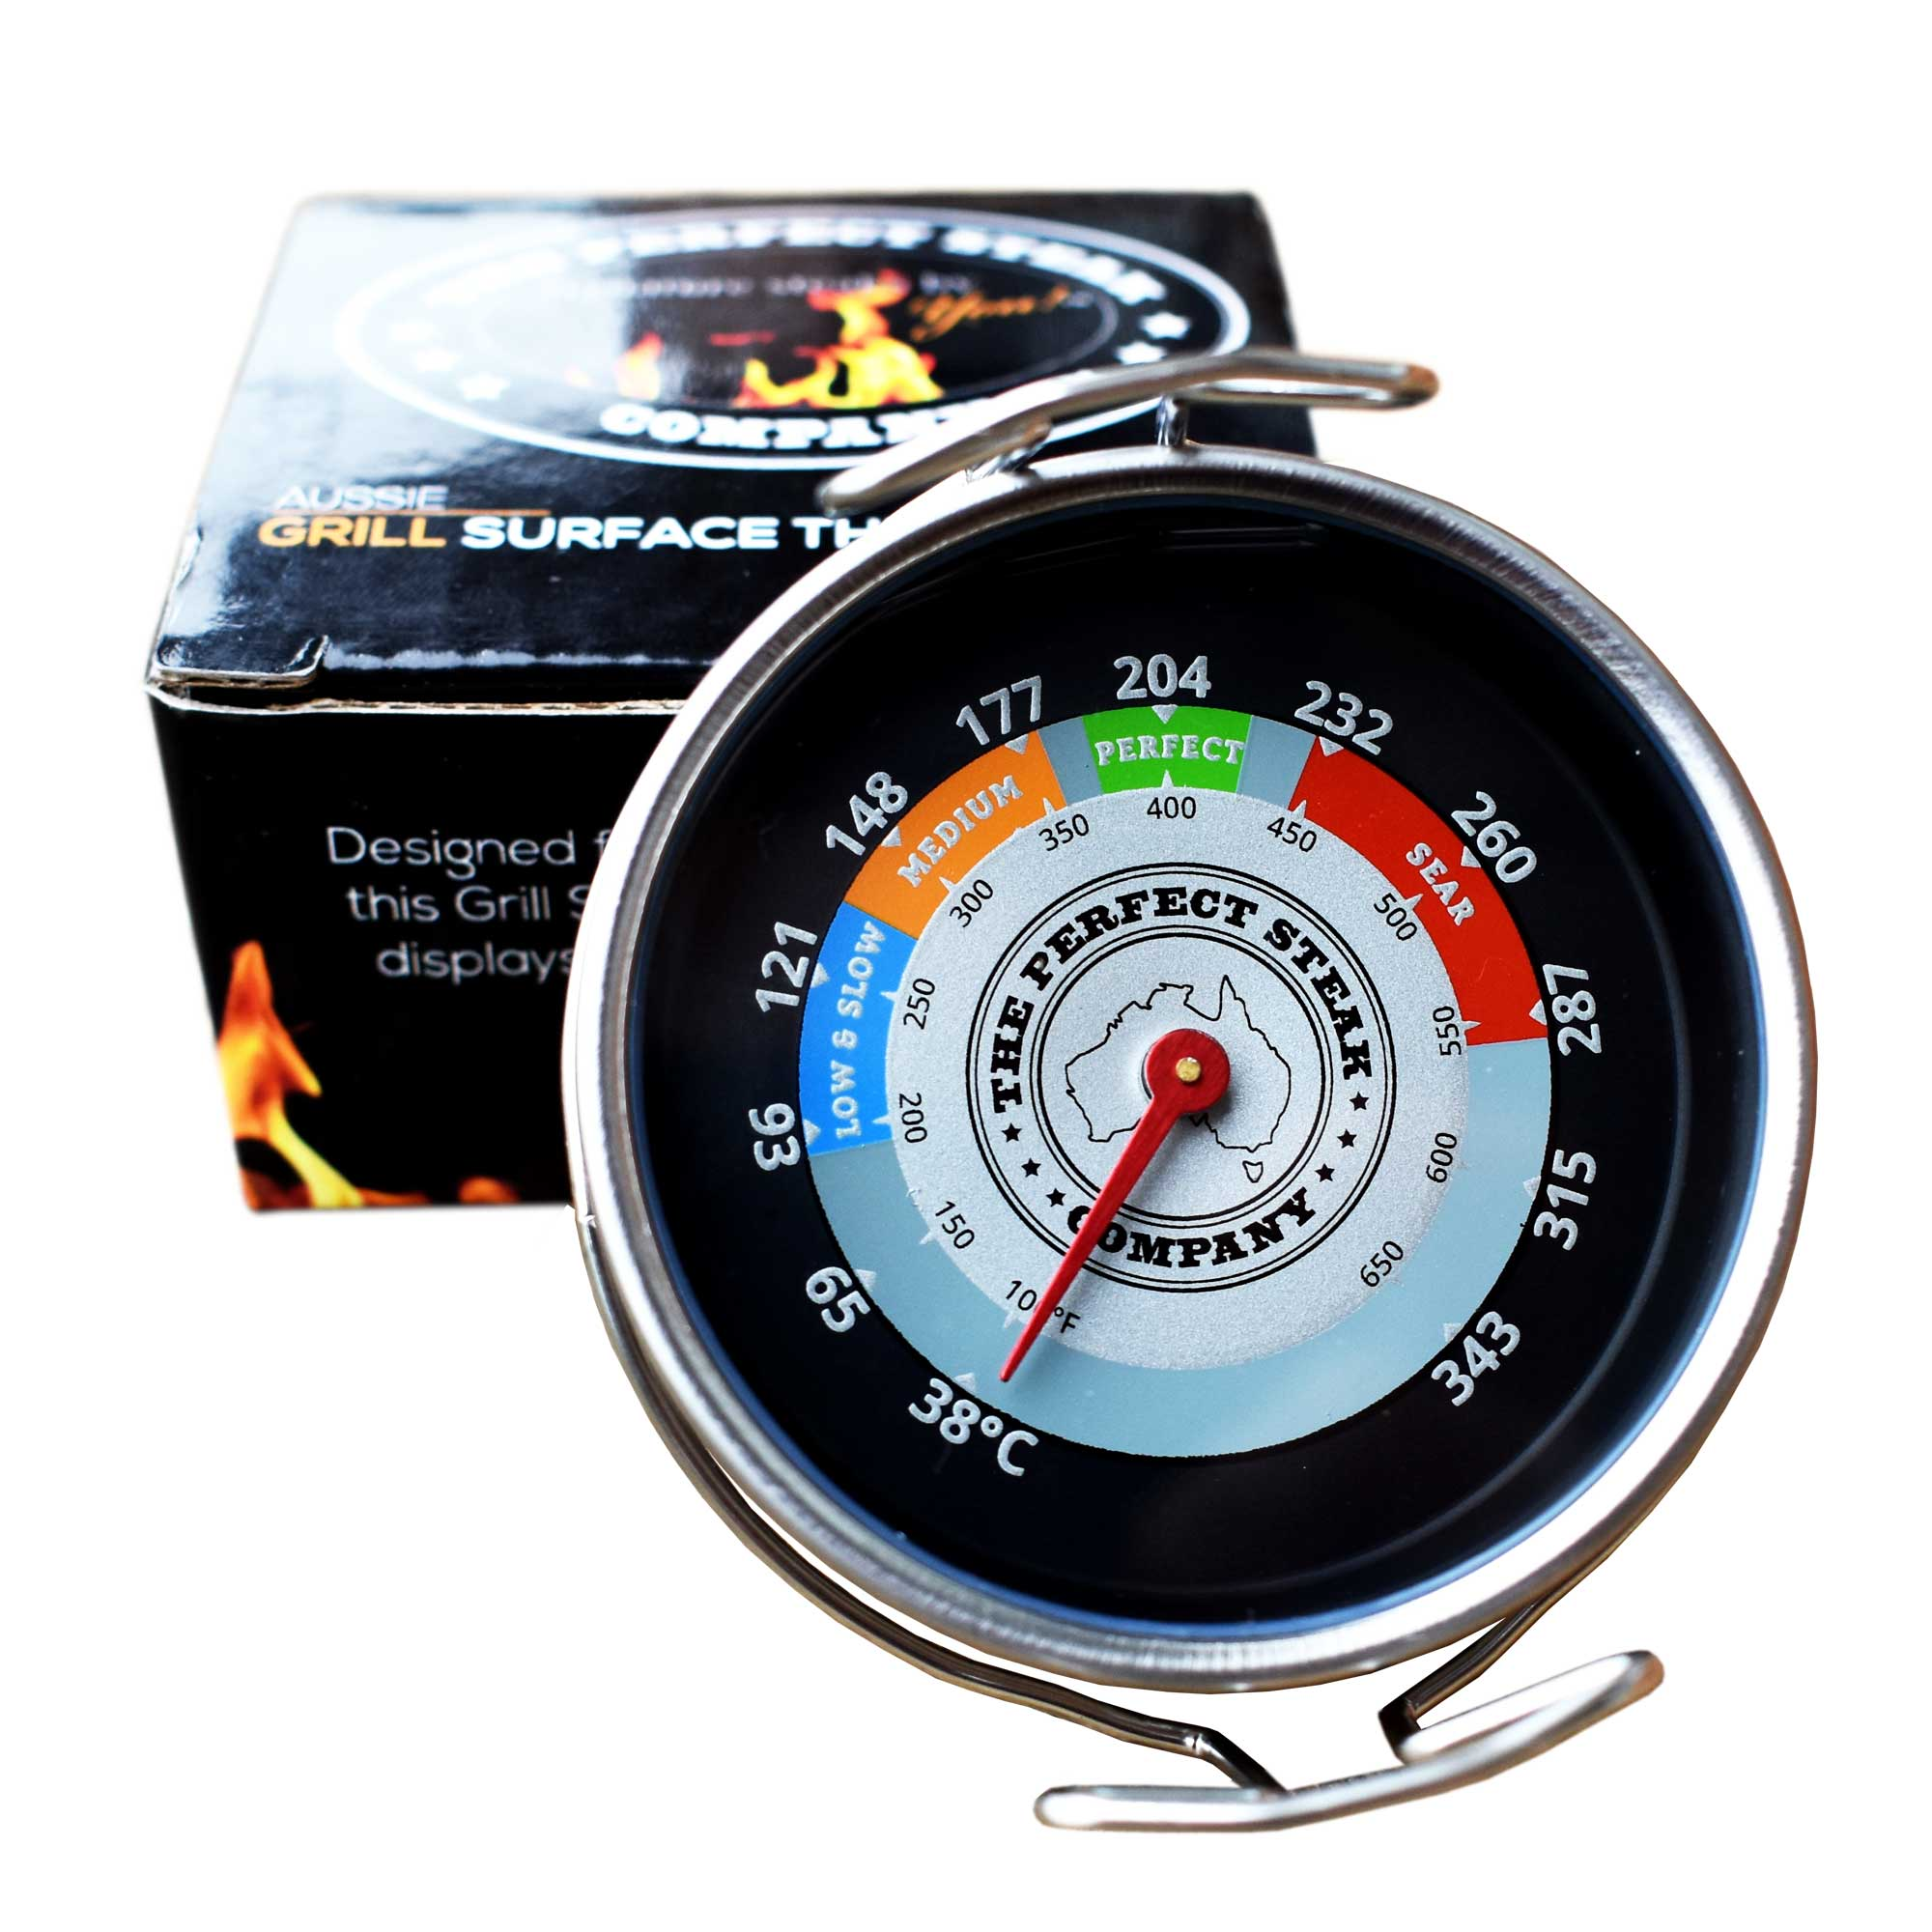 Grill-Surface-thermometer3